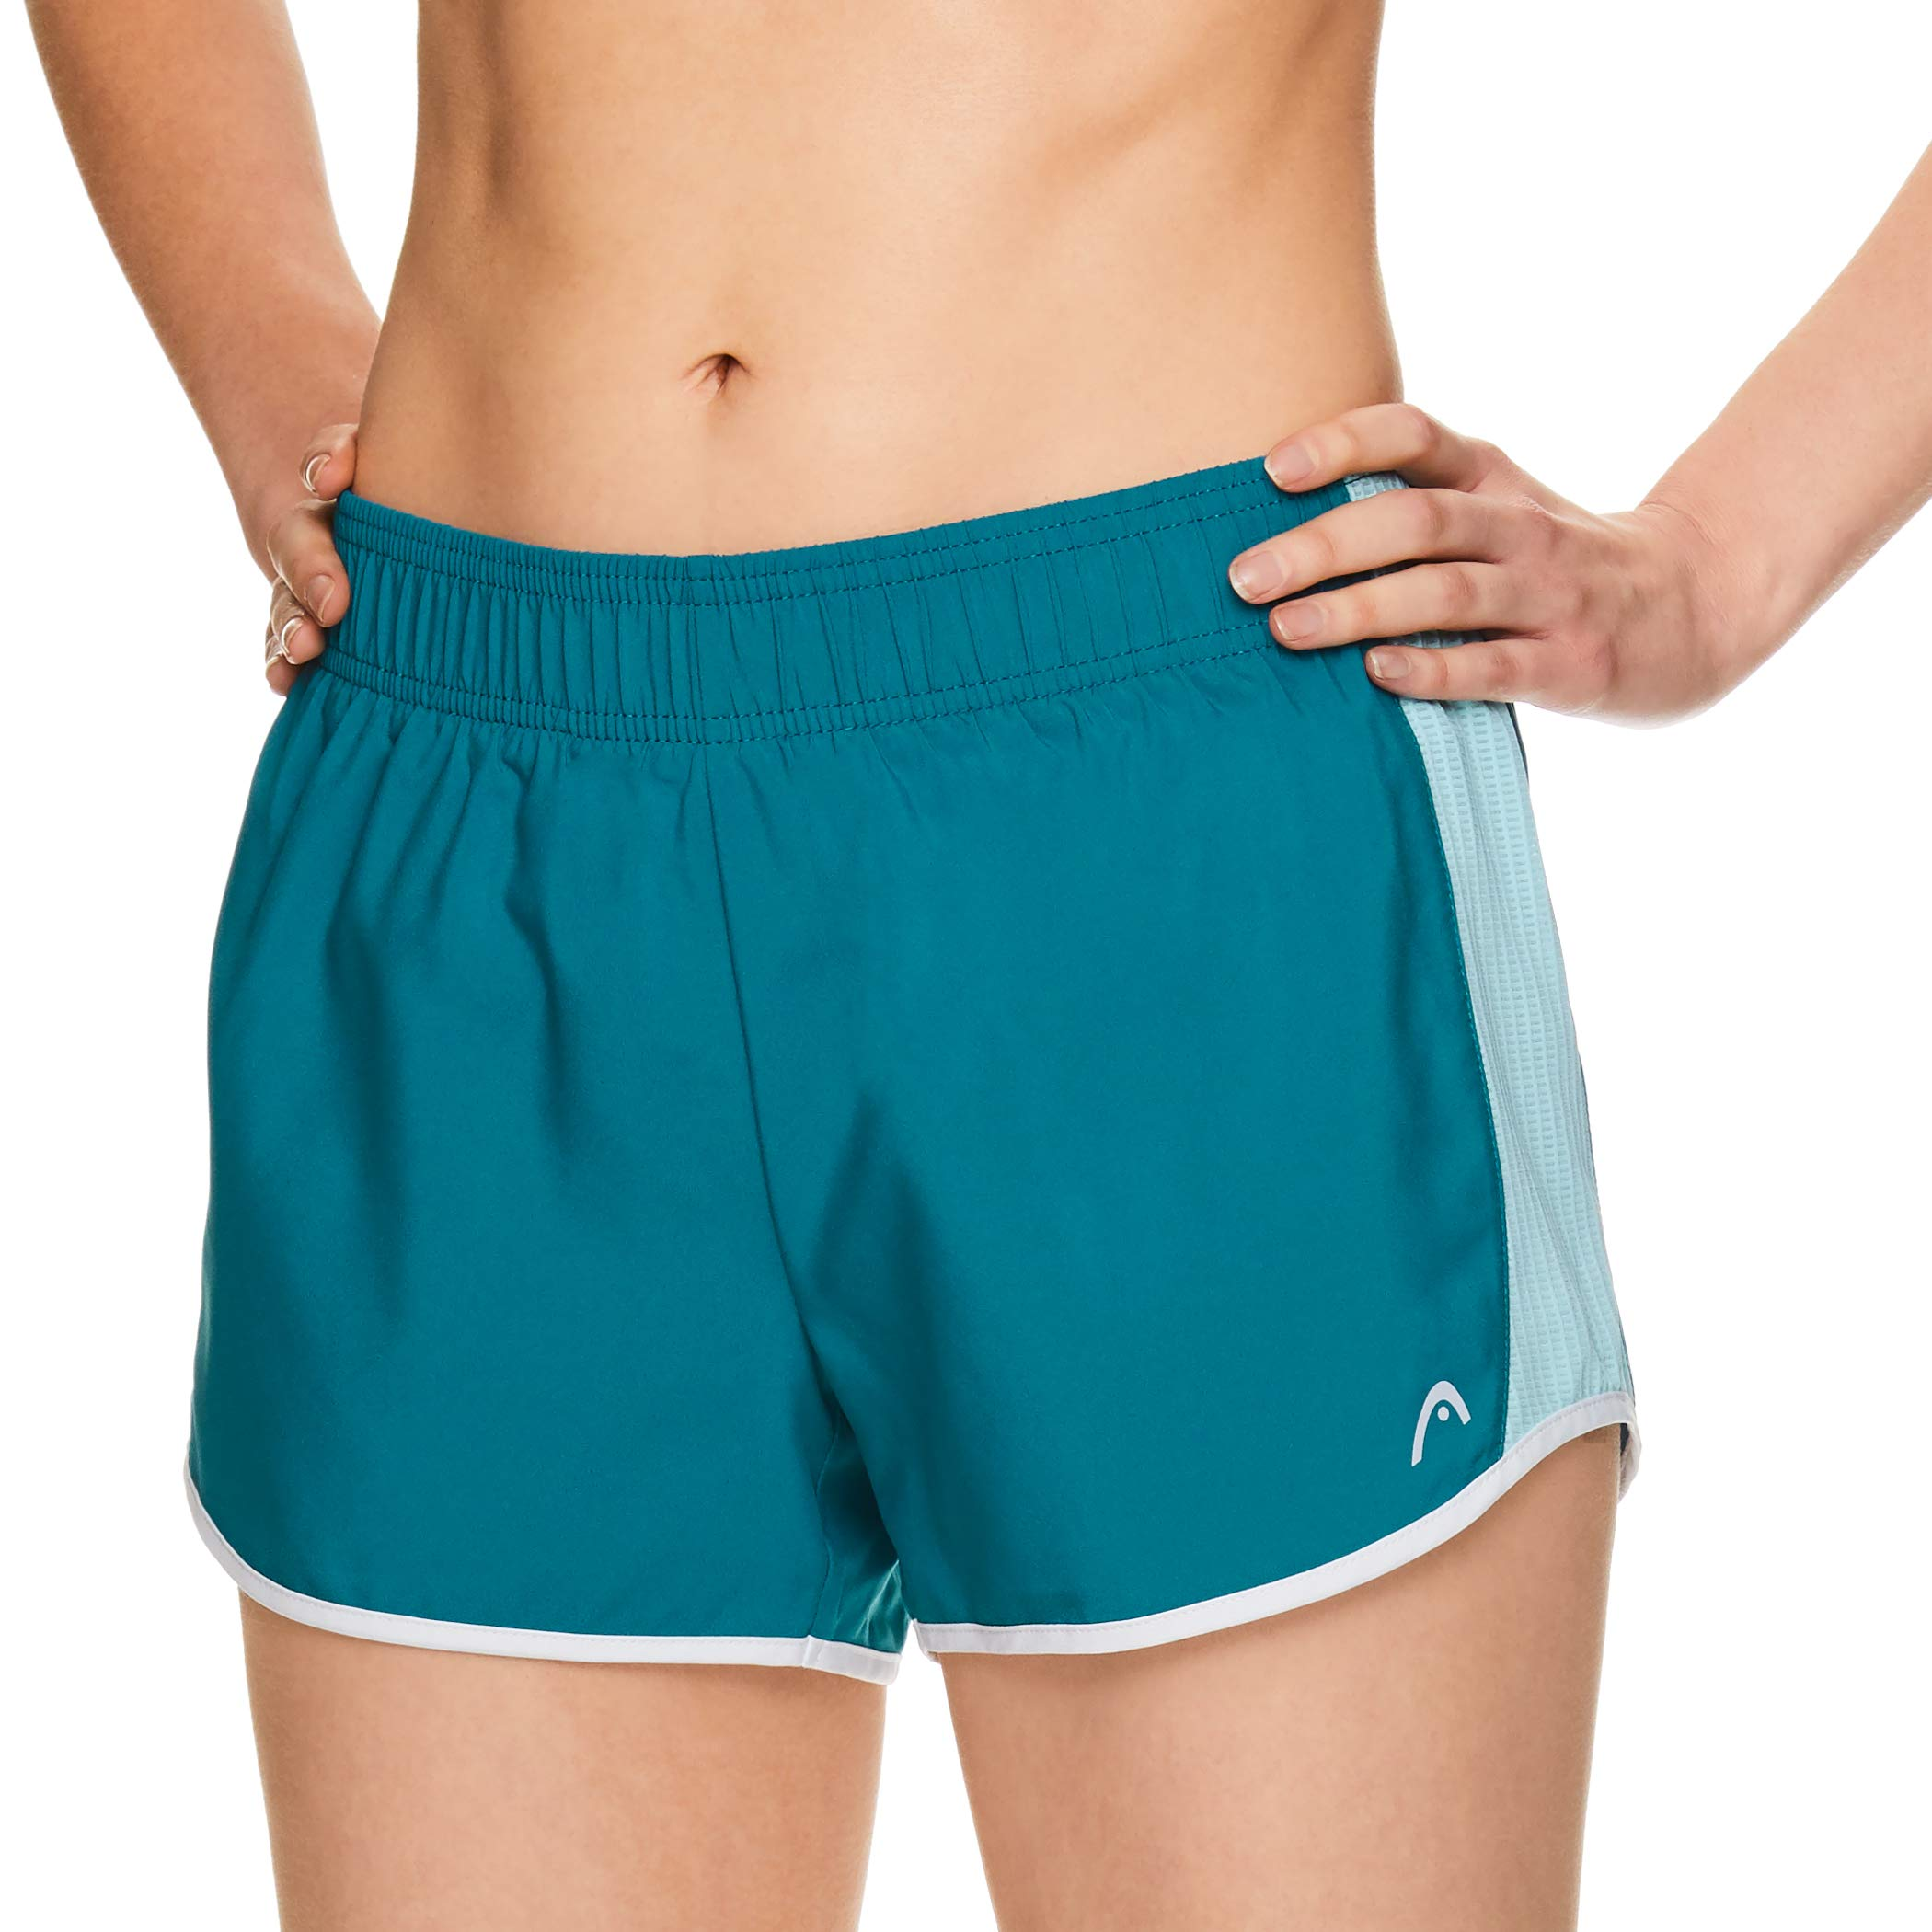 HEAD Women's Athletic Workout Shorts - Polyester Gym Training & Running Short - Ally Crystal Teal, X-Small